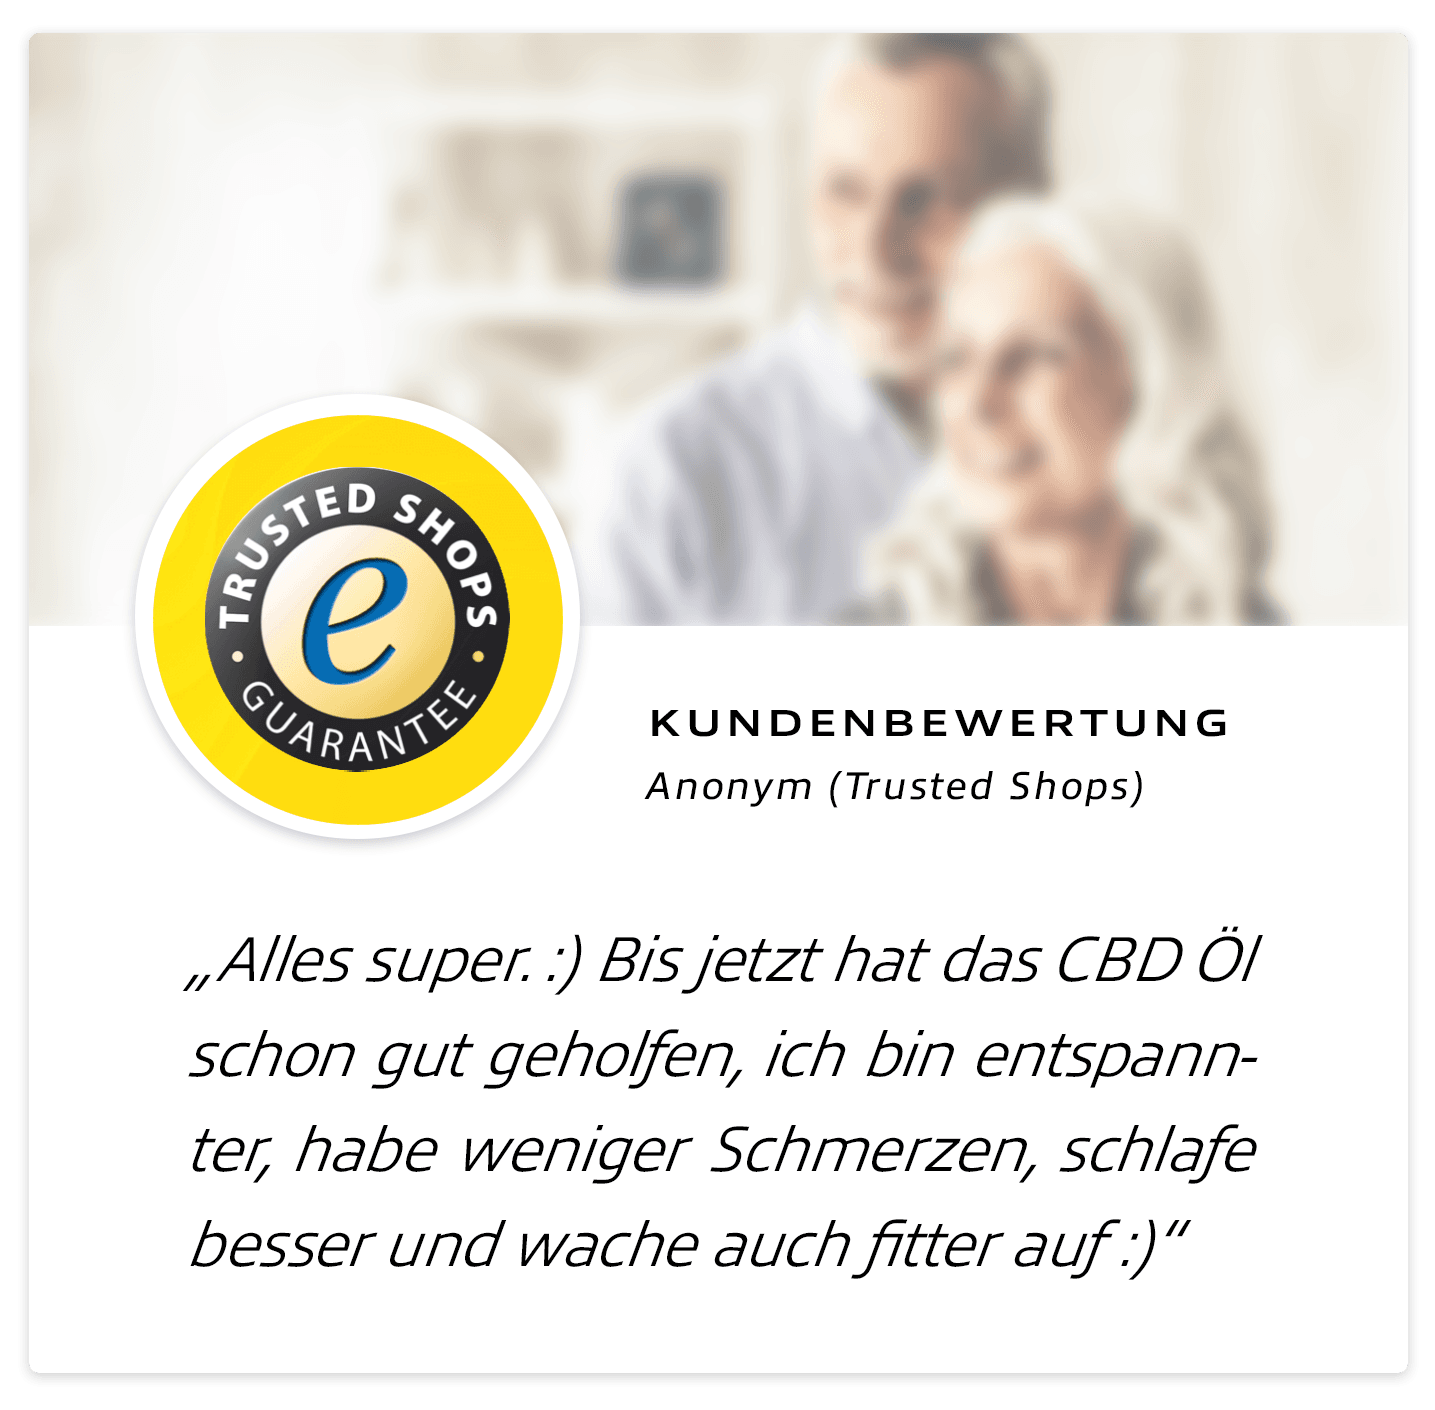 CBD-DEAL24 Erfahrungen: Trusted Shops 06